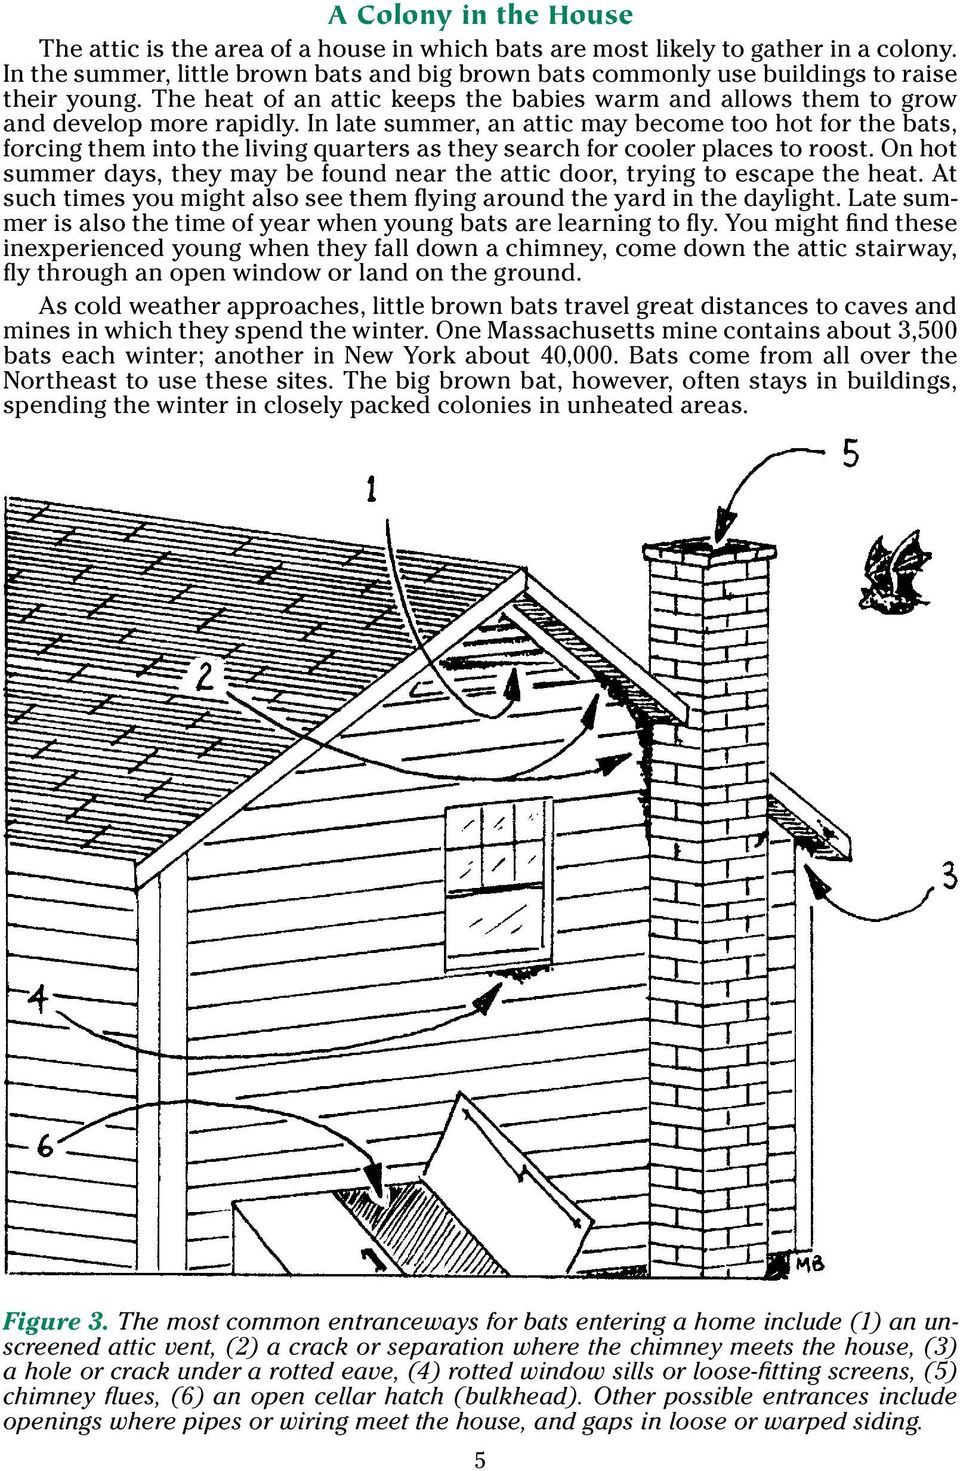 In late summer, an attic may become too hot for the bats, forcing them into the living quarters as they search for cooler places to roost.